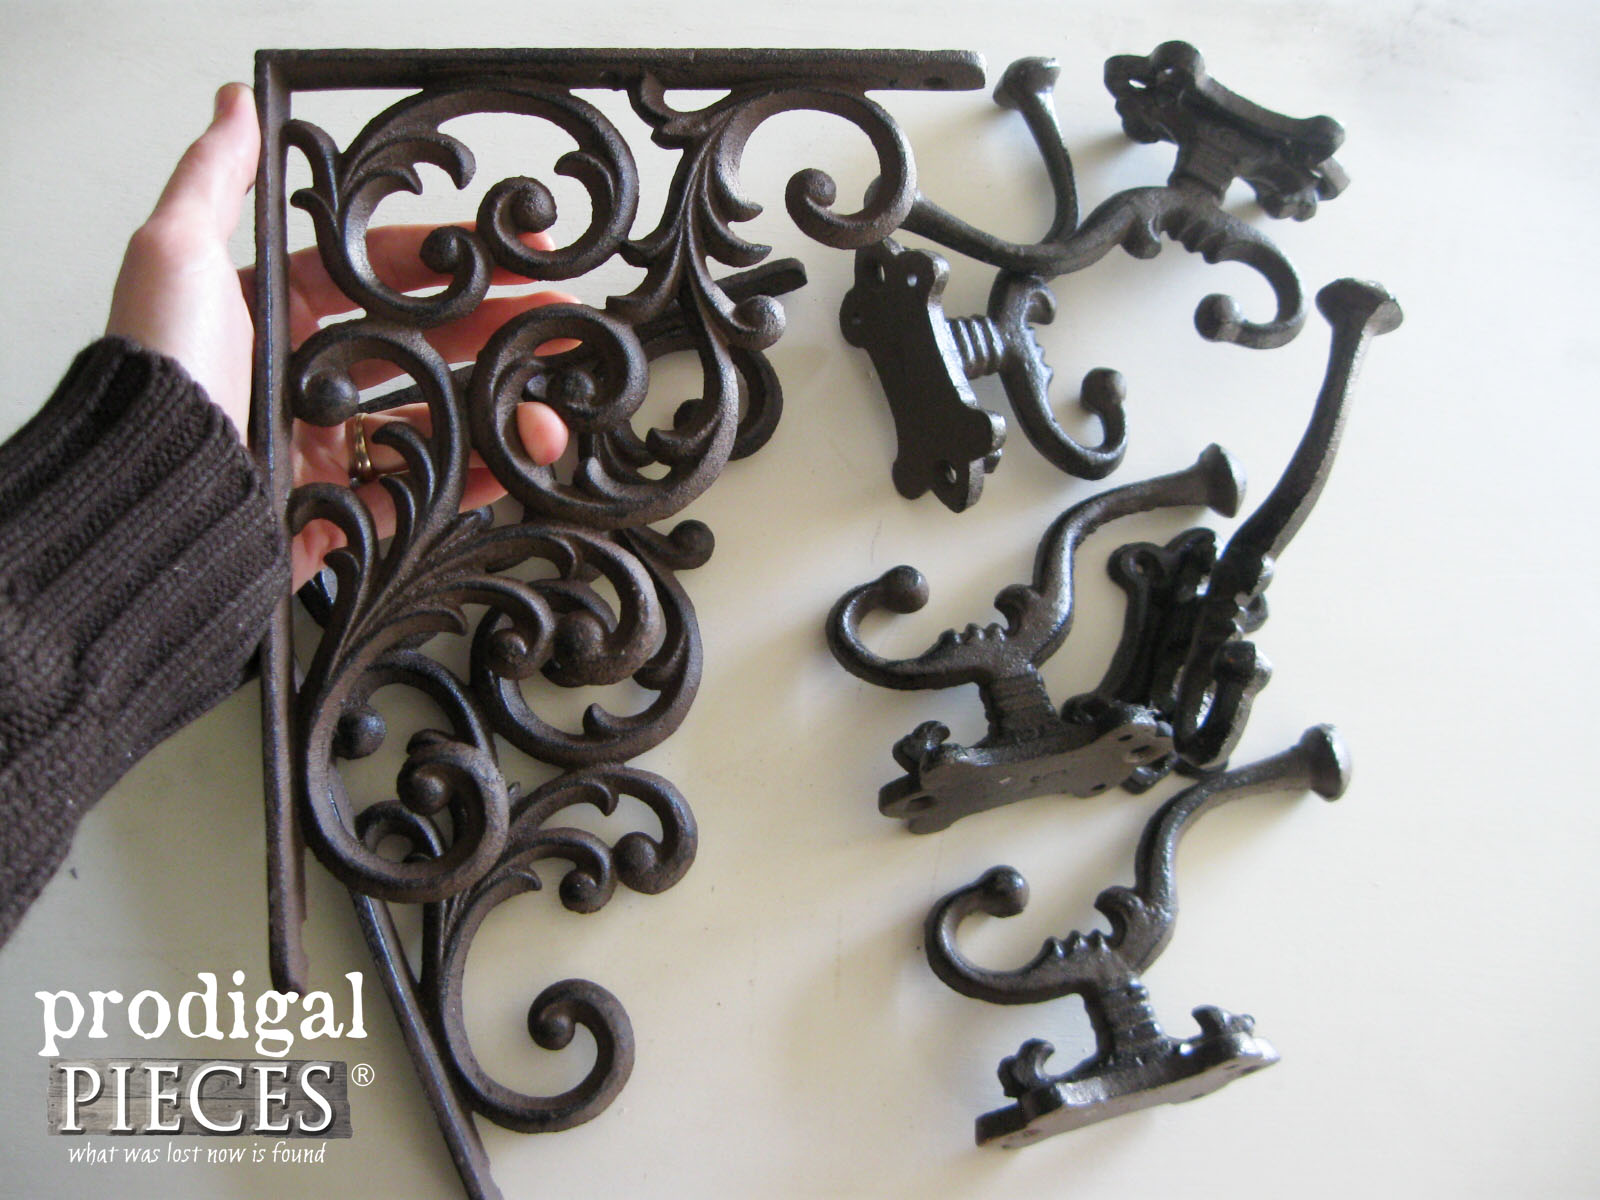 Decorative Cast Iron Brackets and Hooks by Rustic Brands | Prodigal Pieces | www.prodigalpieces.com